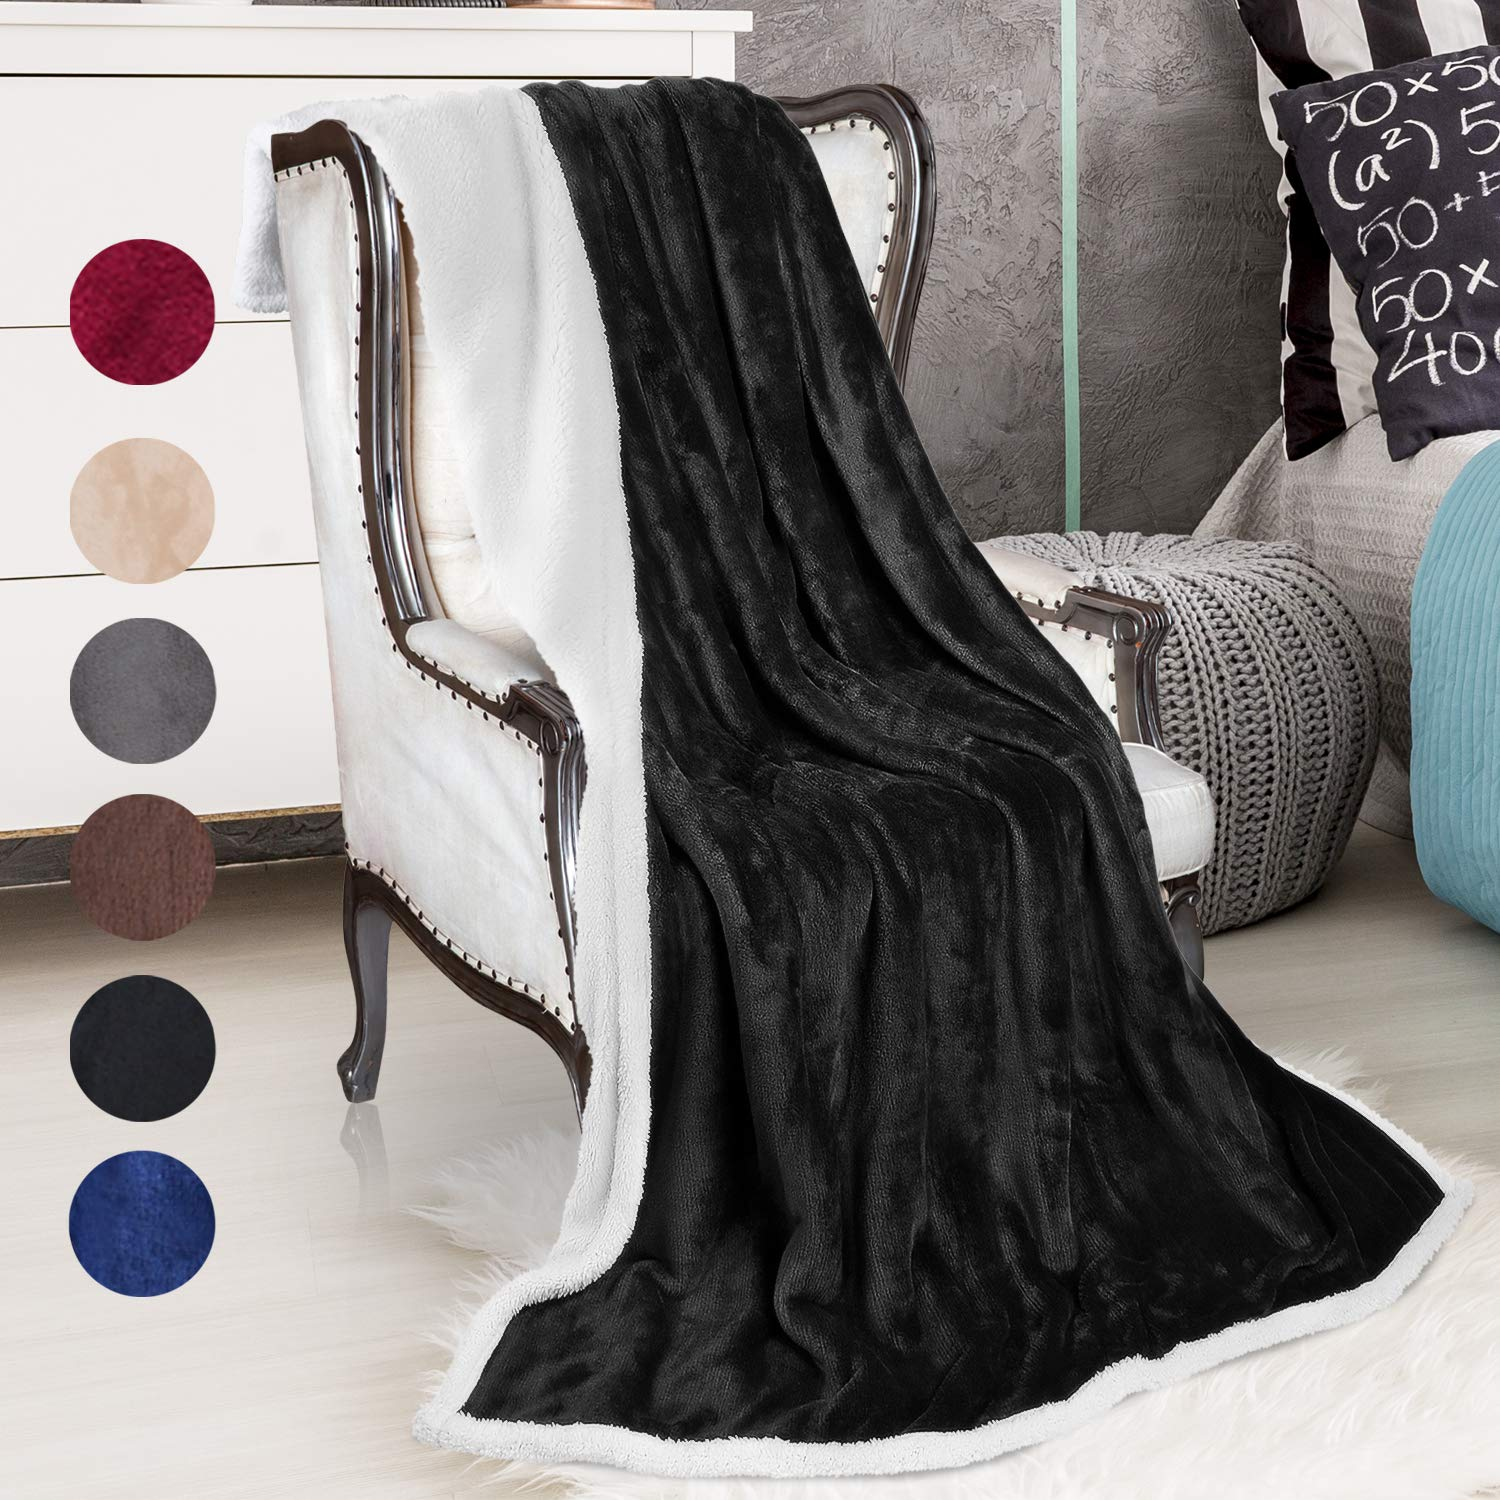 Sherpa Throws Blanket,Super Soft Comfy Micro Mink Flush Fleece Couch  Blanket Reversible Bed Throw TV Blanket,Comfort Caring Gift 50 x 60 Black